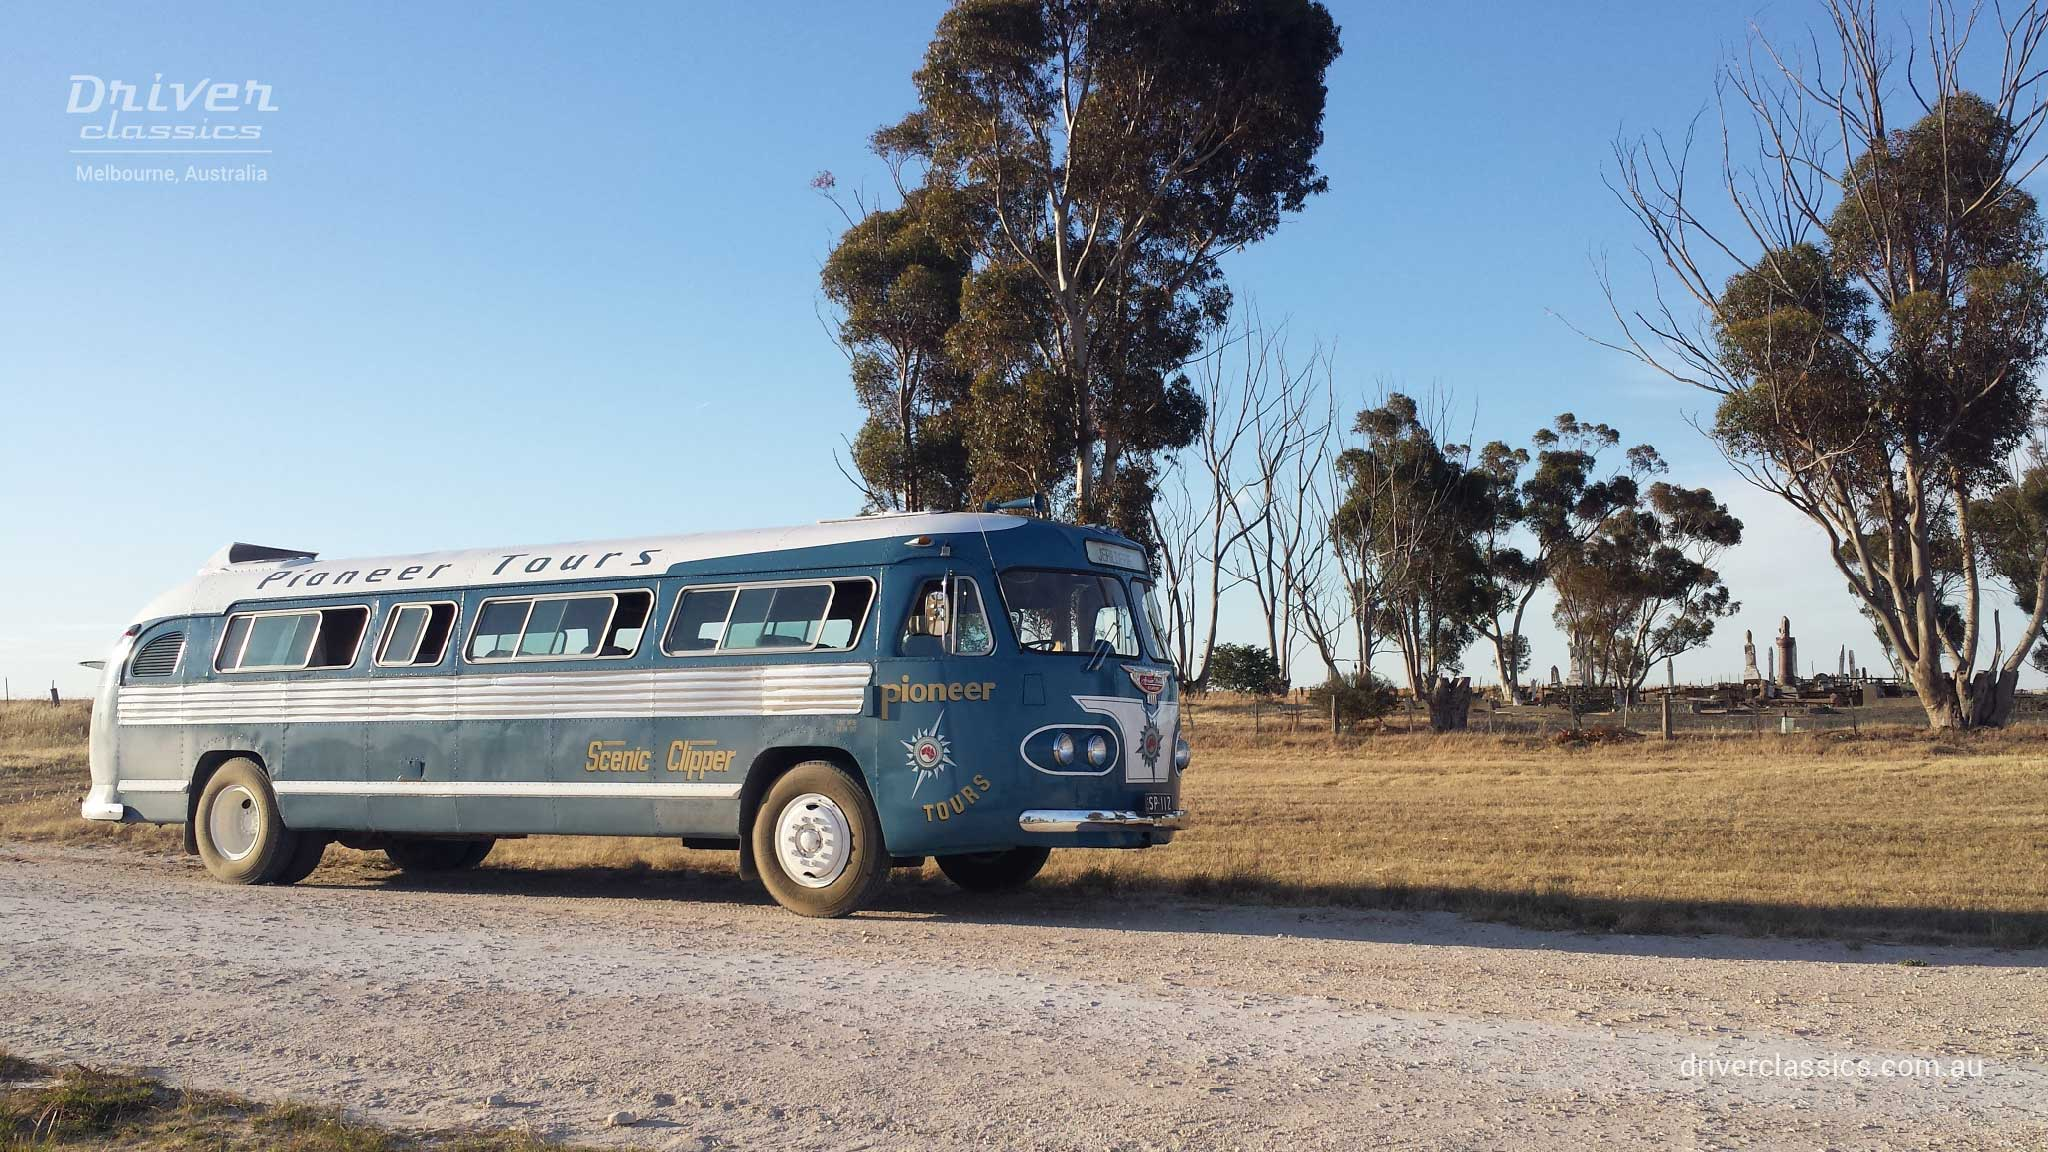 Flxible Clipper bus (1954 version) parked on set of The Dressmaker movie. Photo taken Feb 2015.